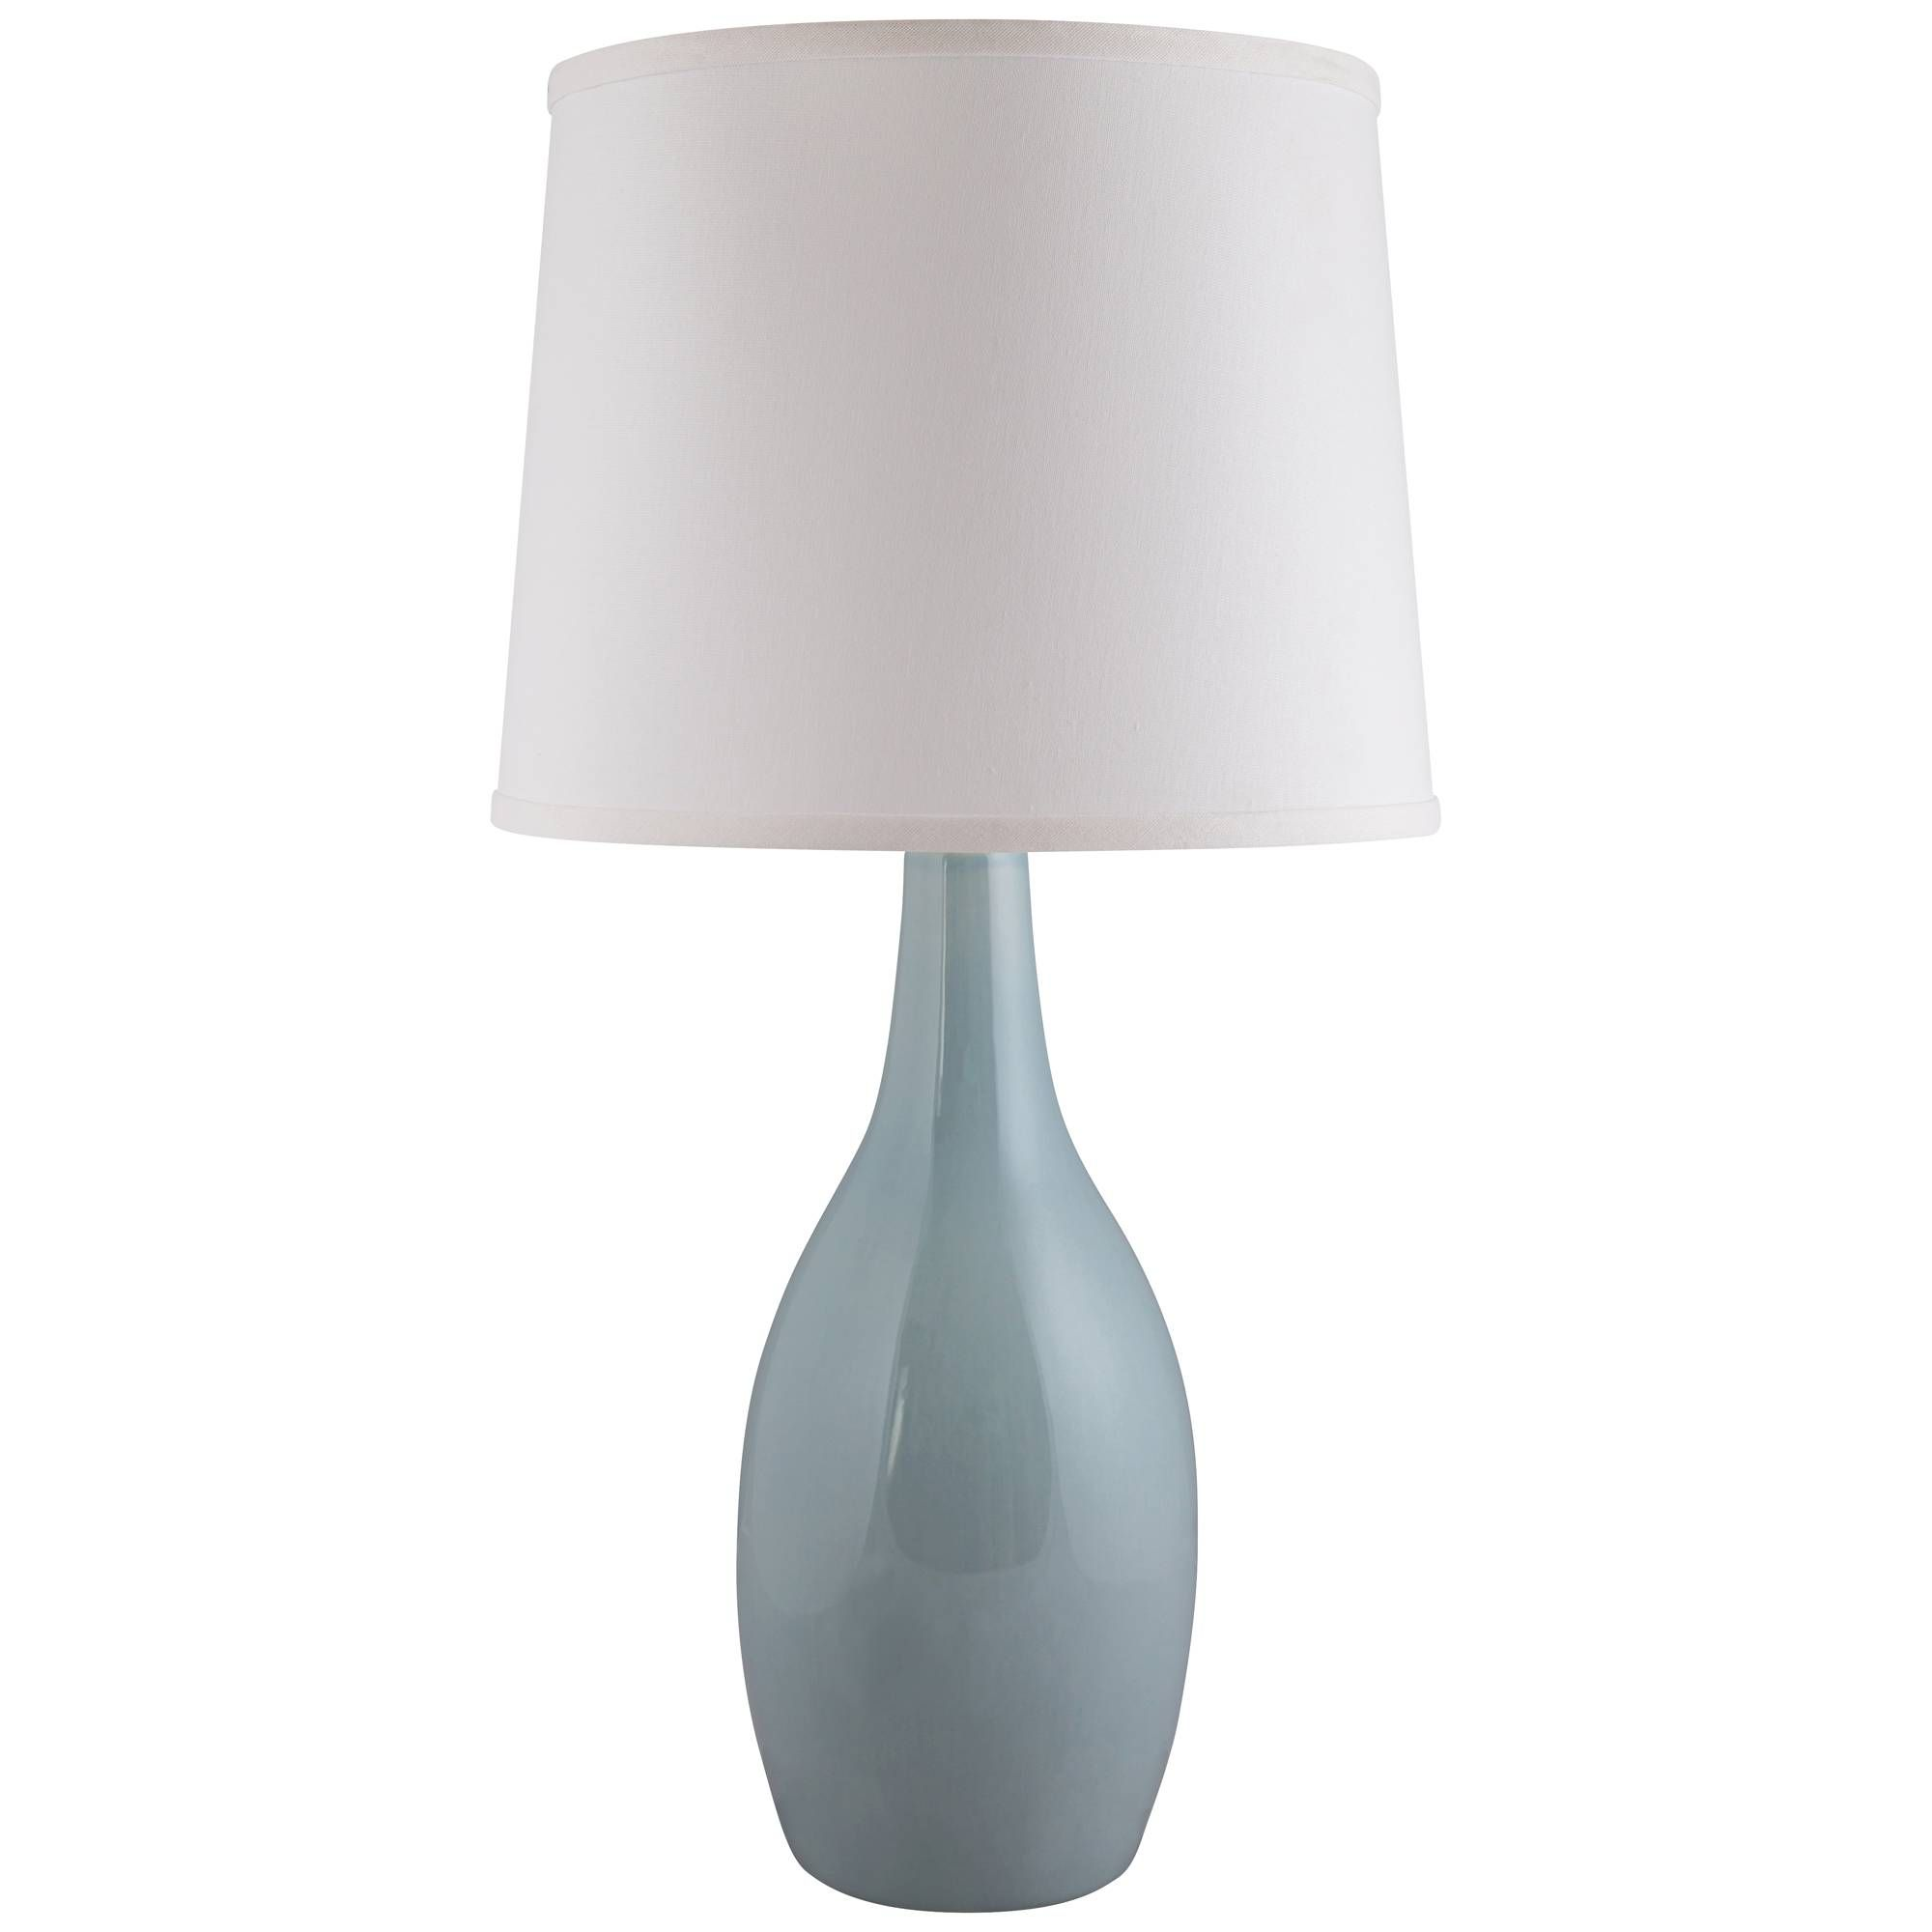 Arby mist blue gloss droplet ceramic table lamp aloadofball Images